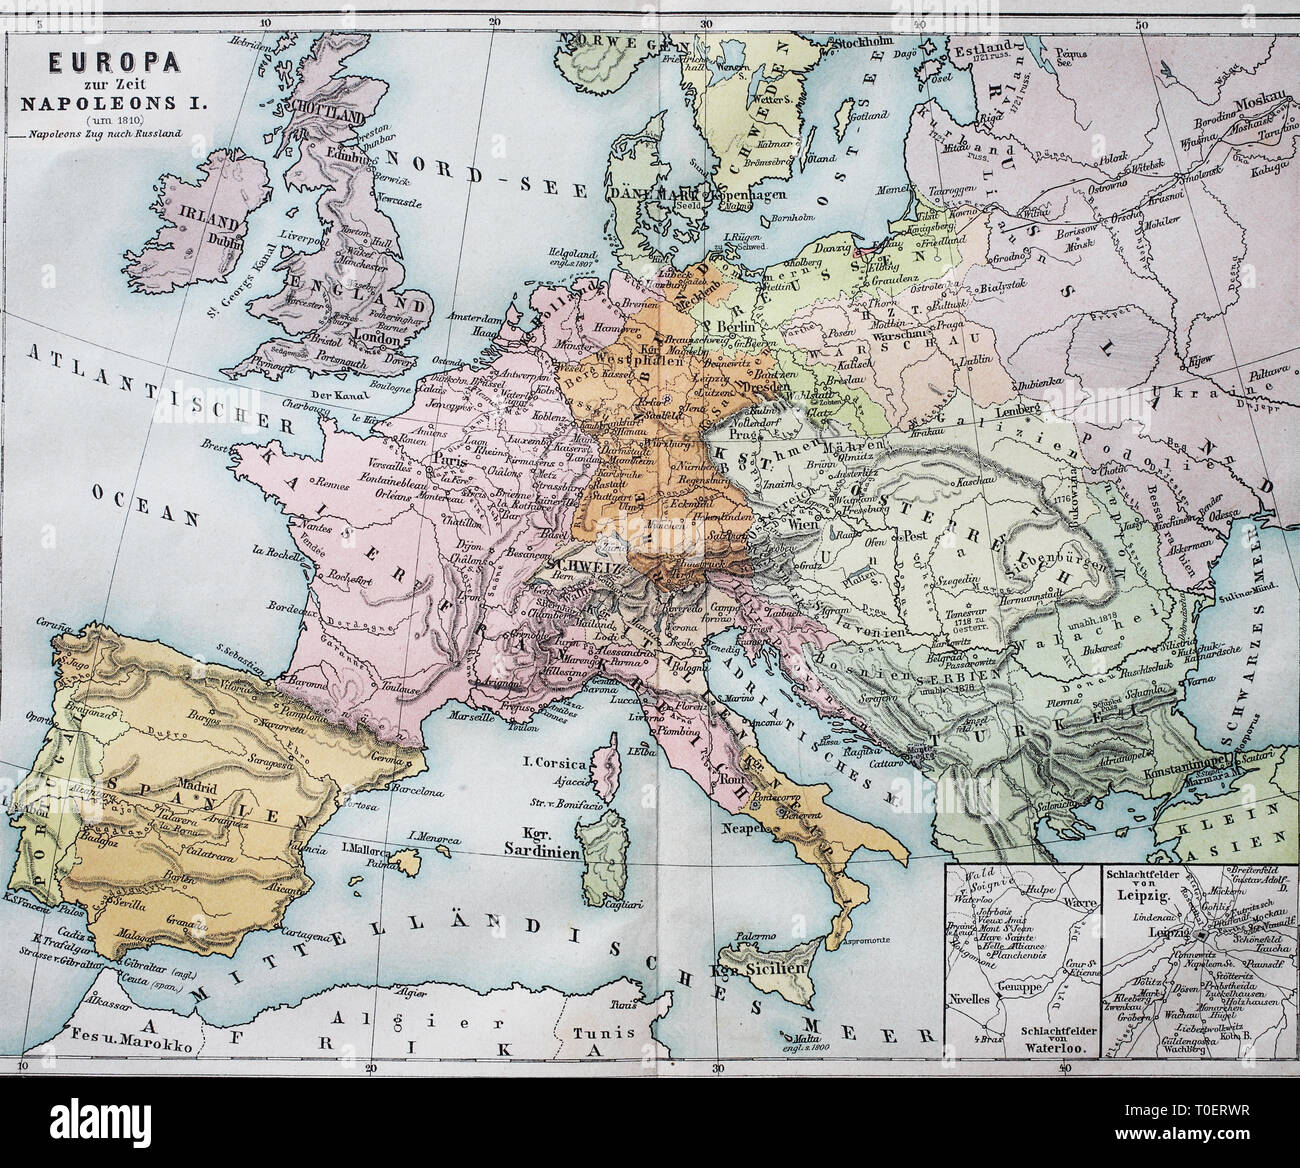 Historical Map Of Europe From The Time Of Napoleon I